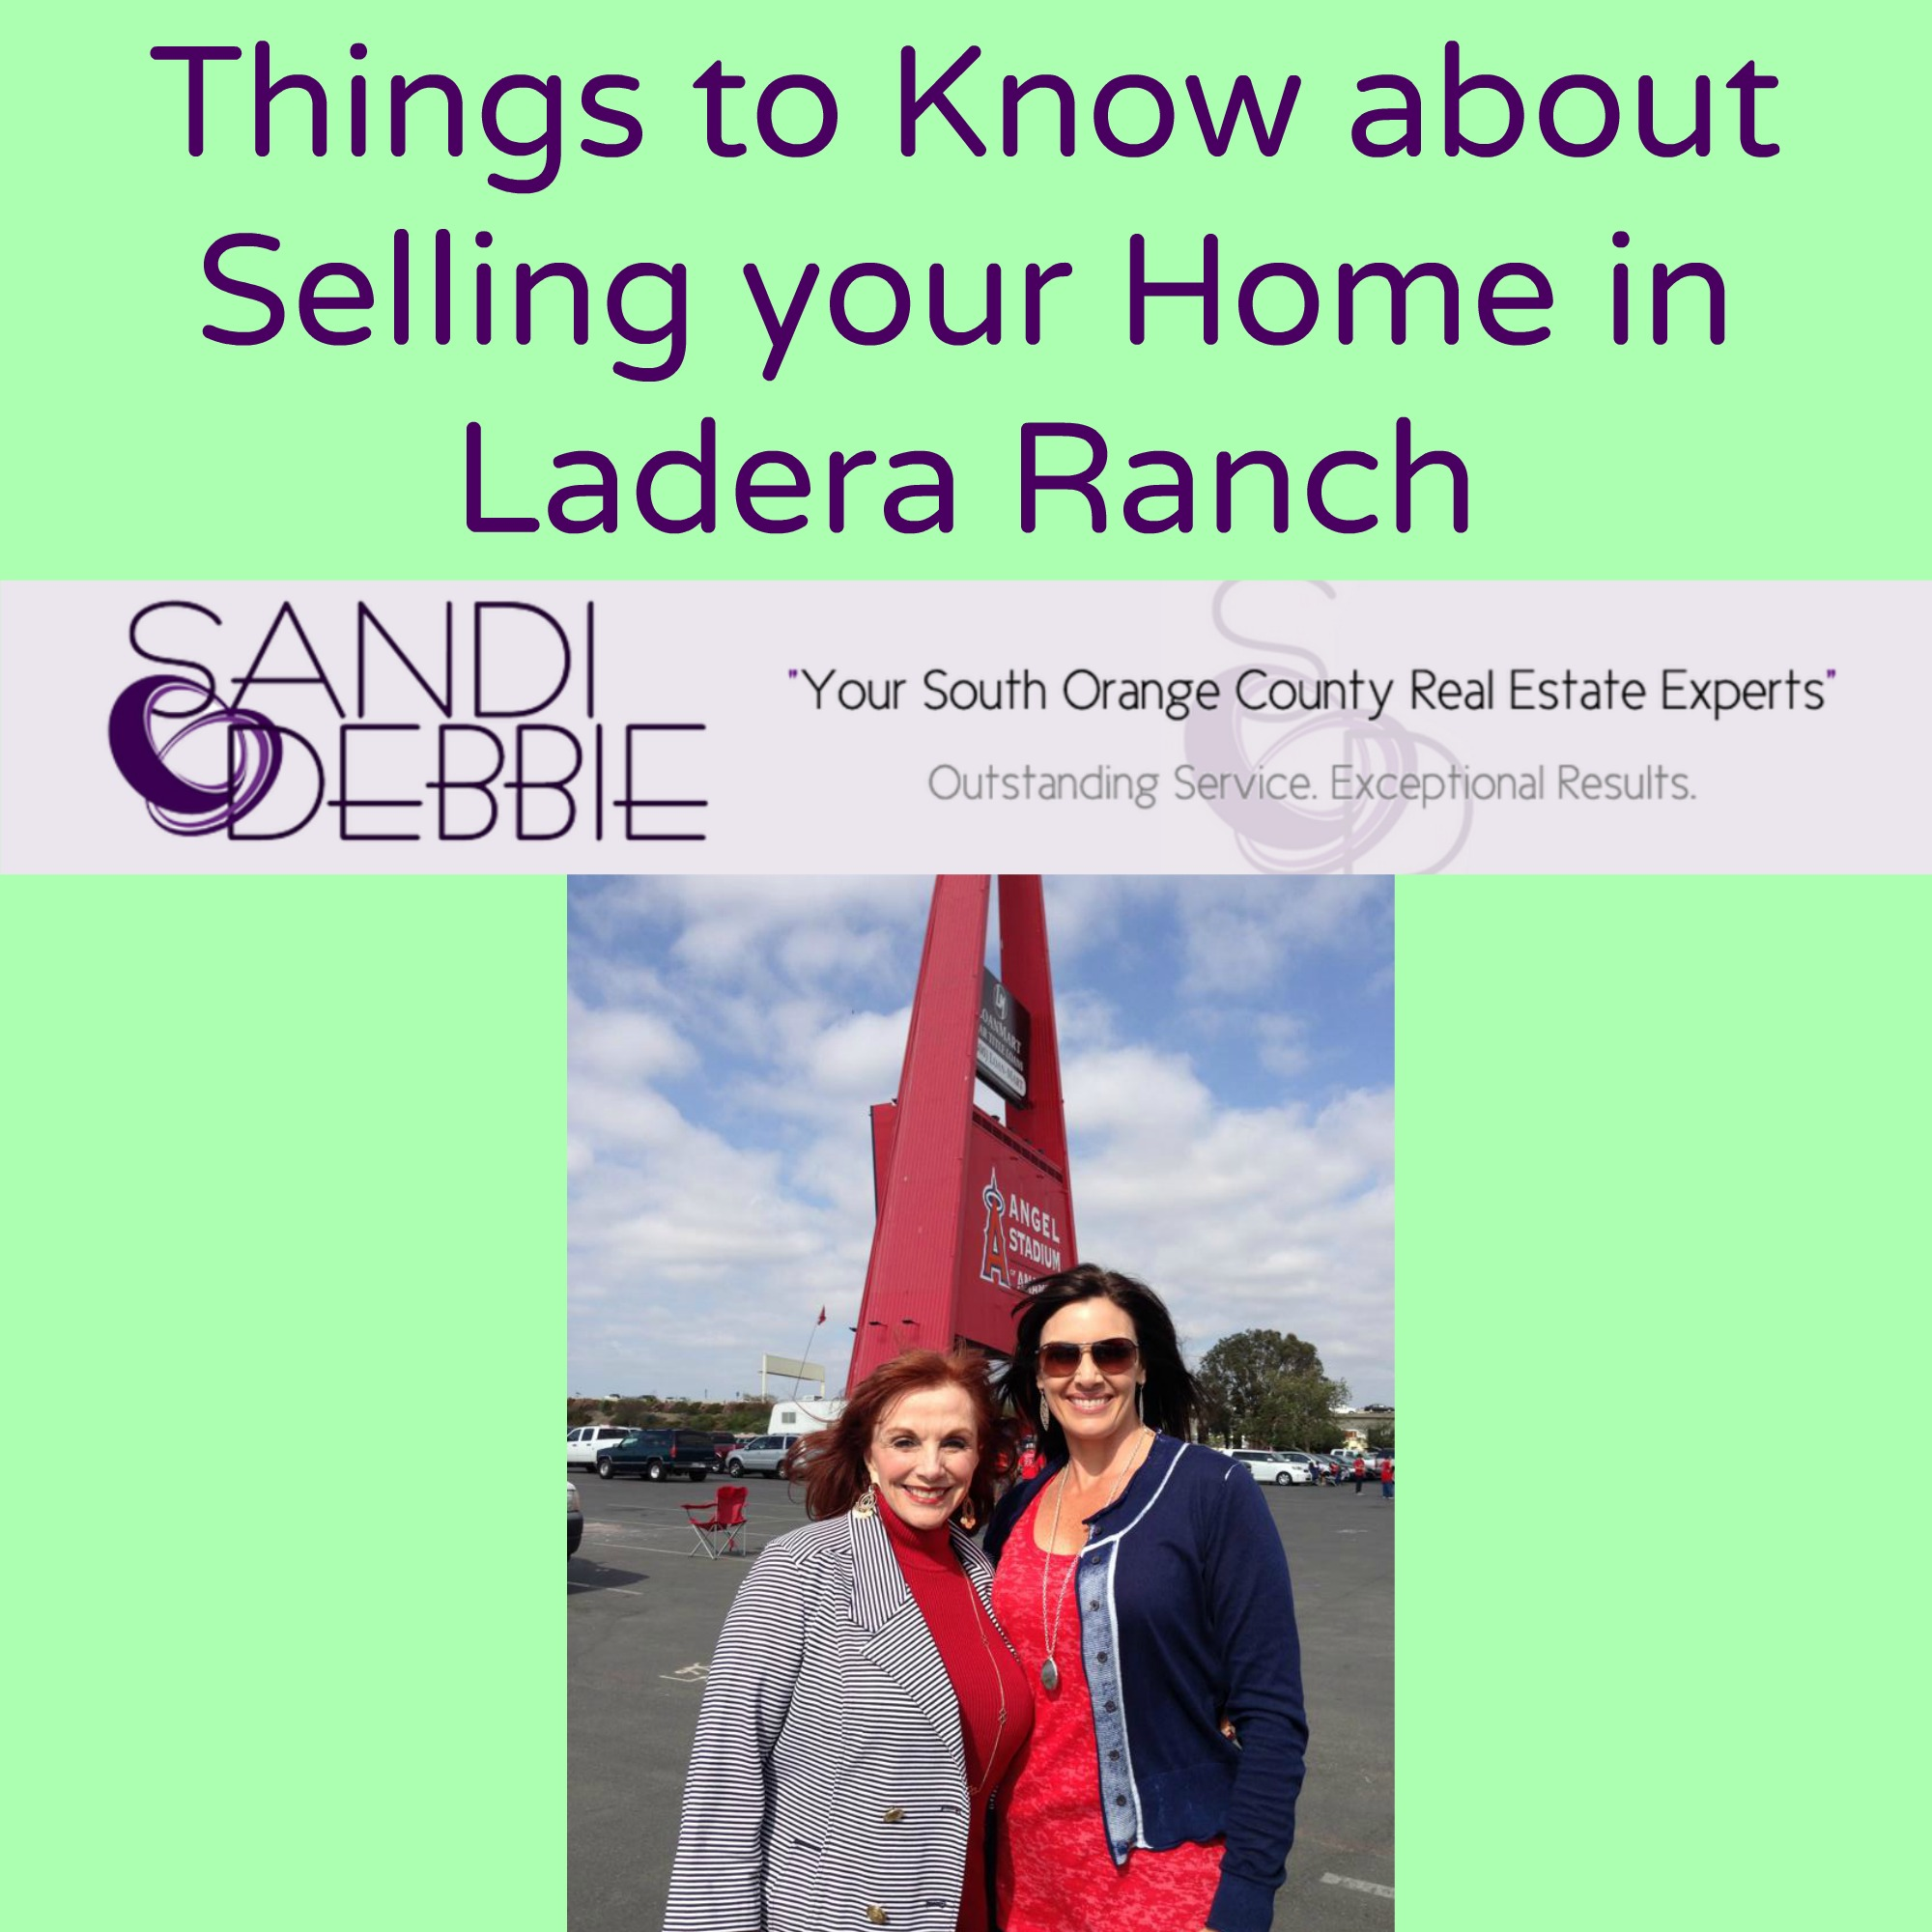 Things to Know about Selling your Home in Ladera Ranch